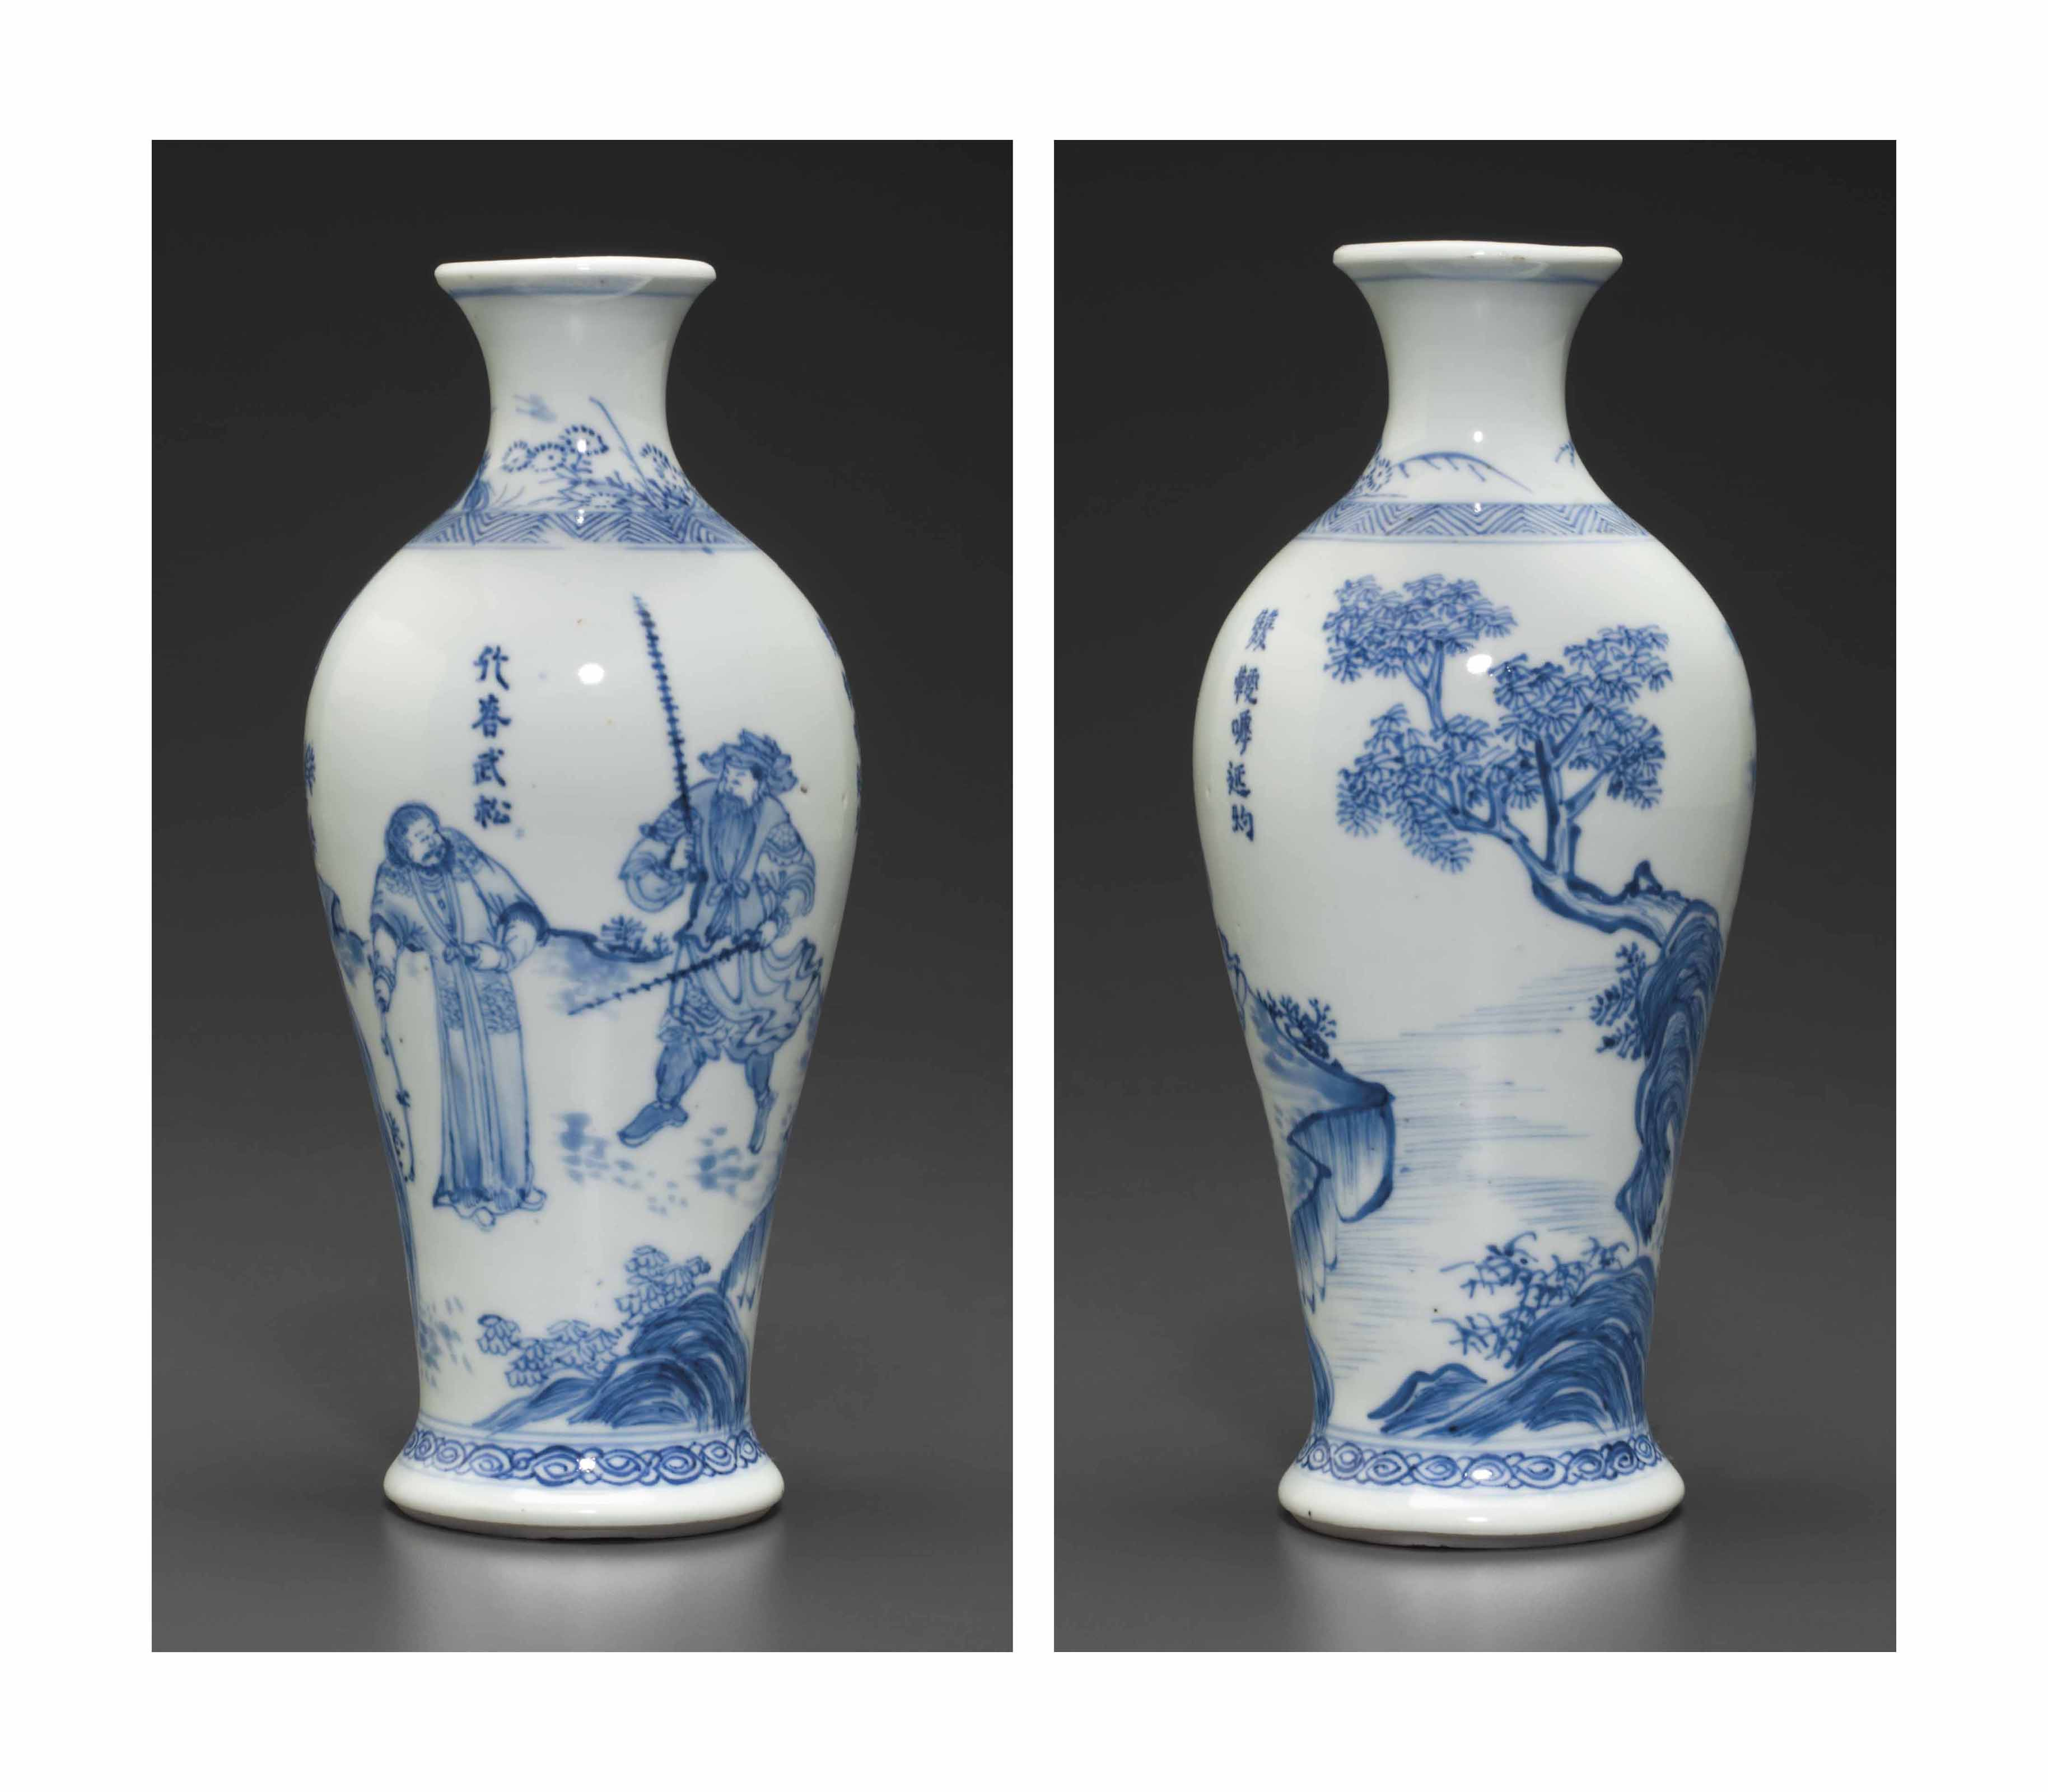 A Small Blue And White Vase Early Kangxi Period Circa